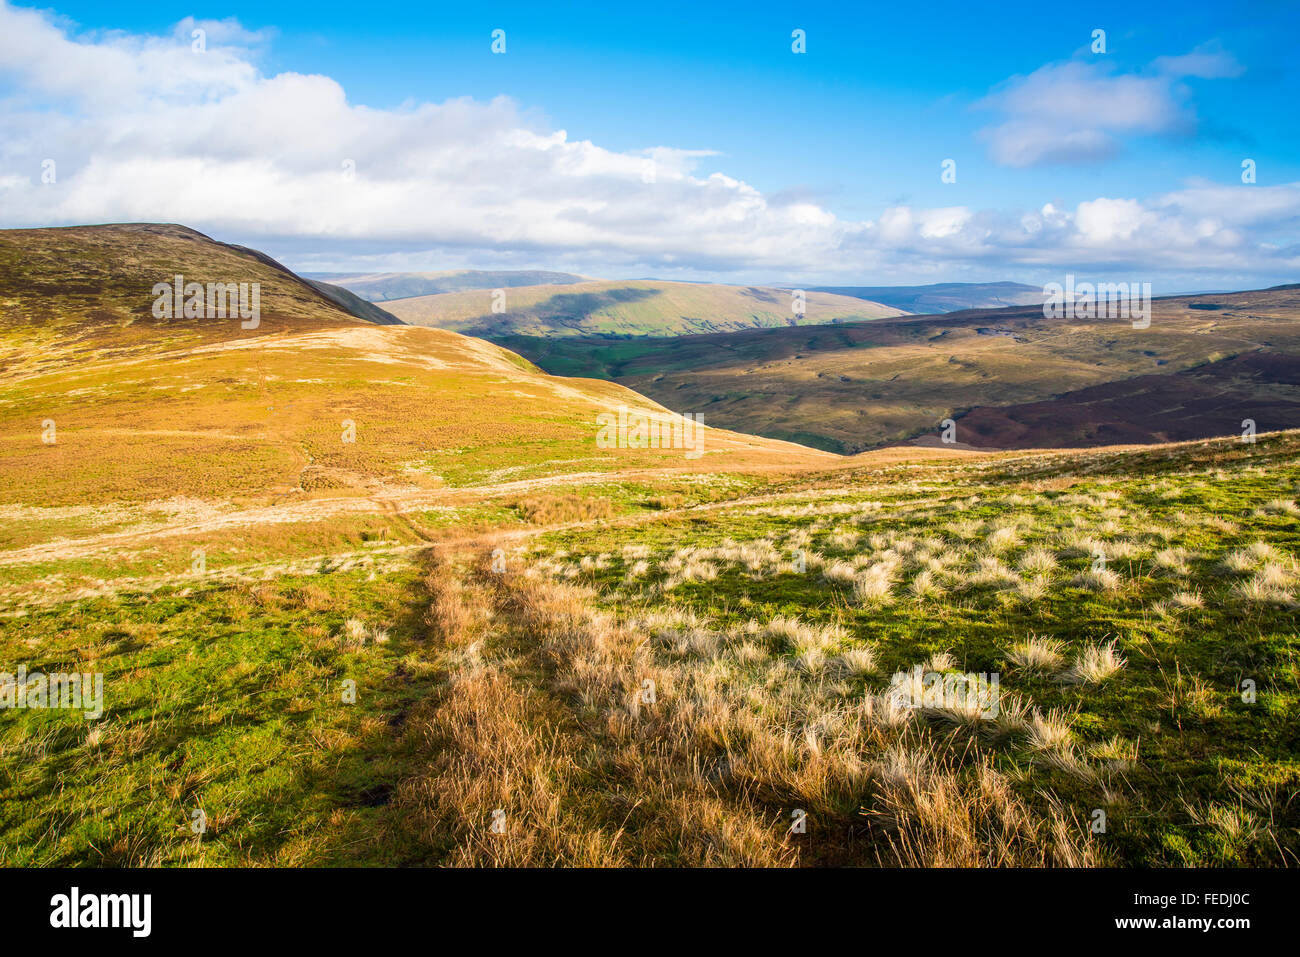 Ridge between Castle Knott and main top of Middleton Fell Cumbria looking towards the Yorkshire Dales - Stock Image